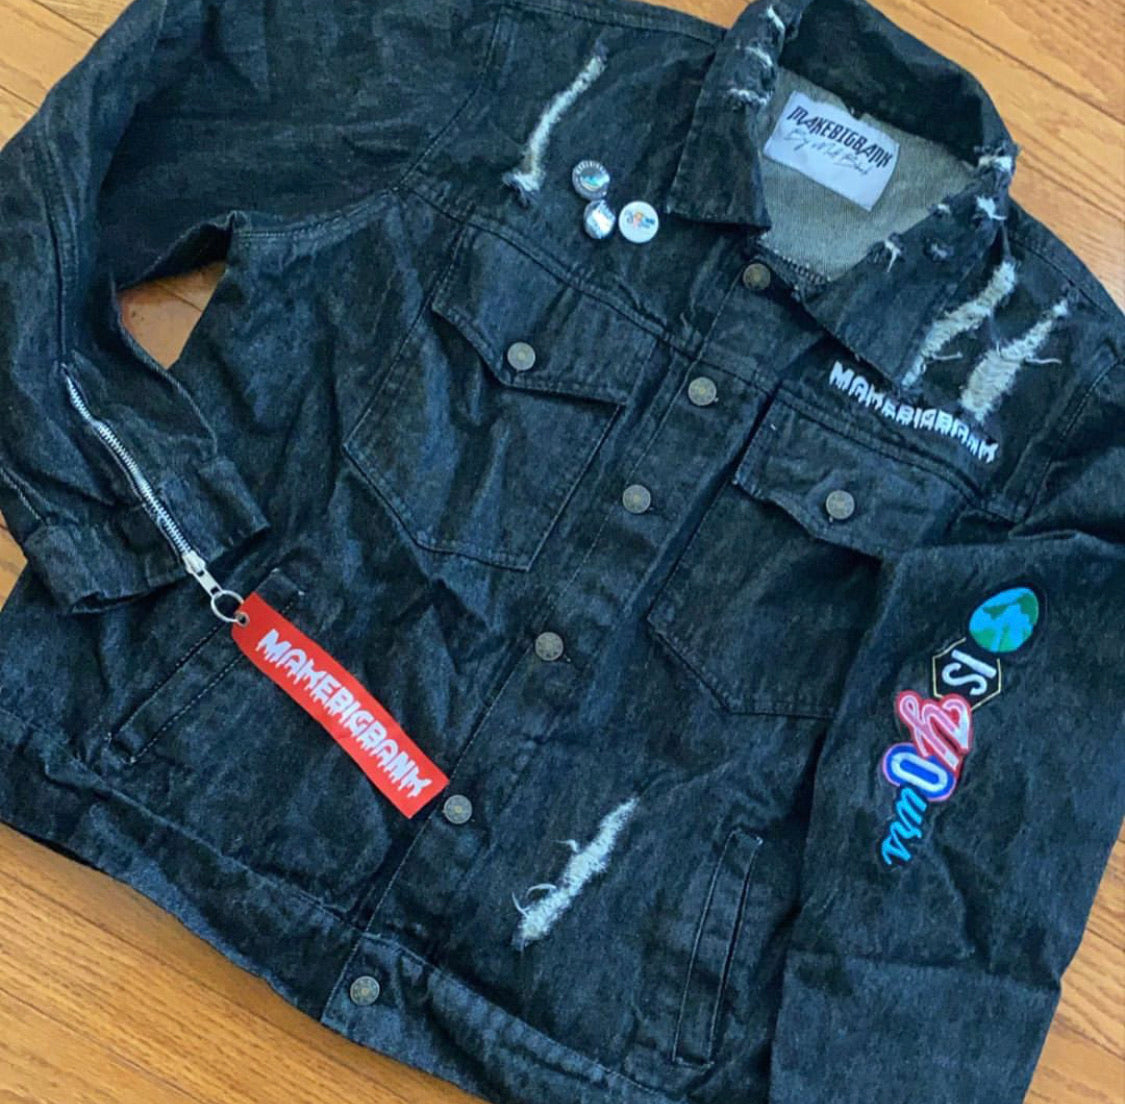 Denim Jacket - Make Big Bank